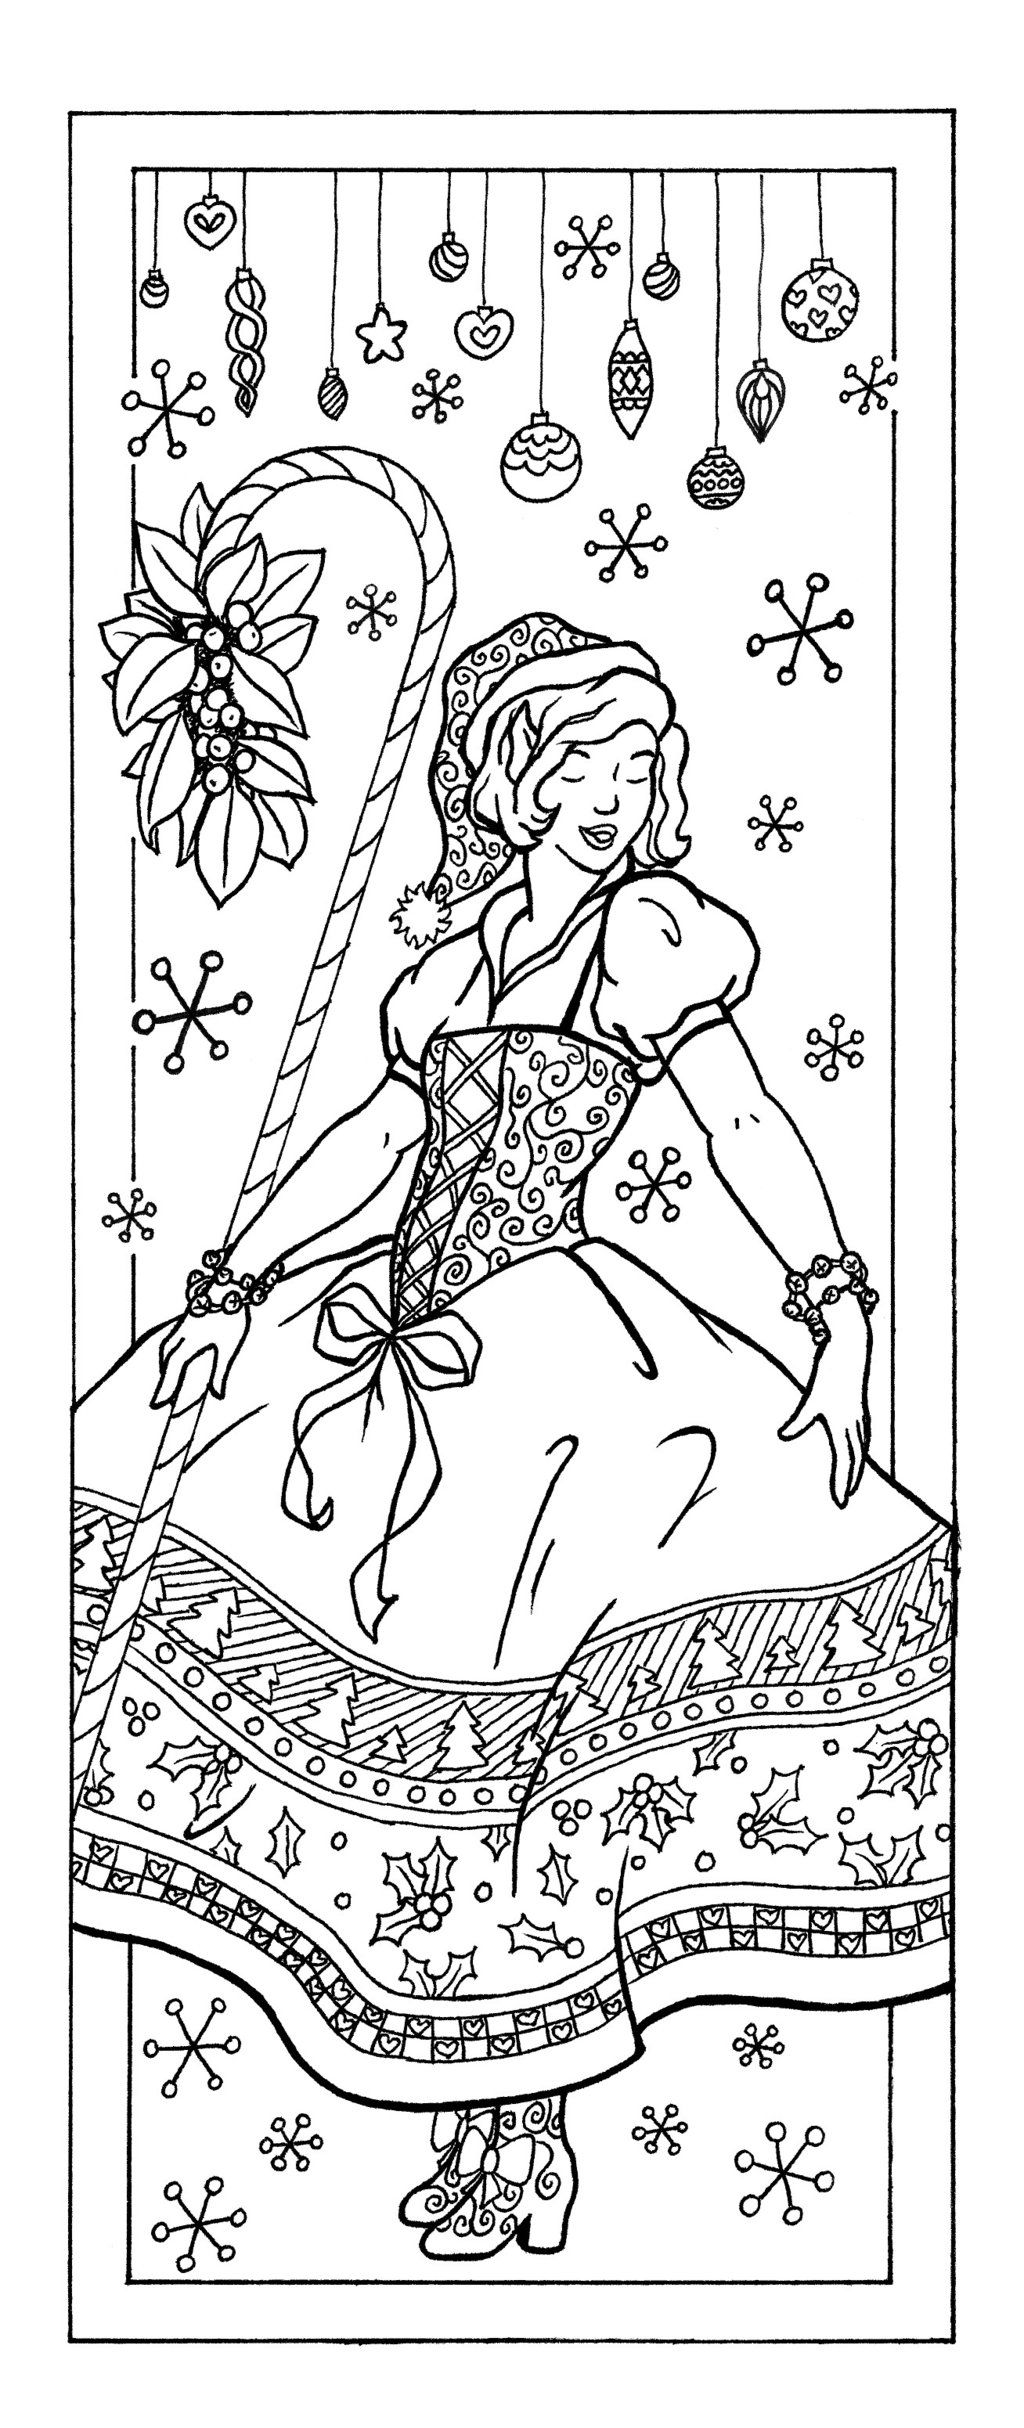 Pin By Amy Sue On Coloring Pages Detailed Big Kids Coloring Pages Christmas Coloring Pages Coloring Books